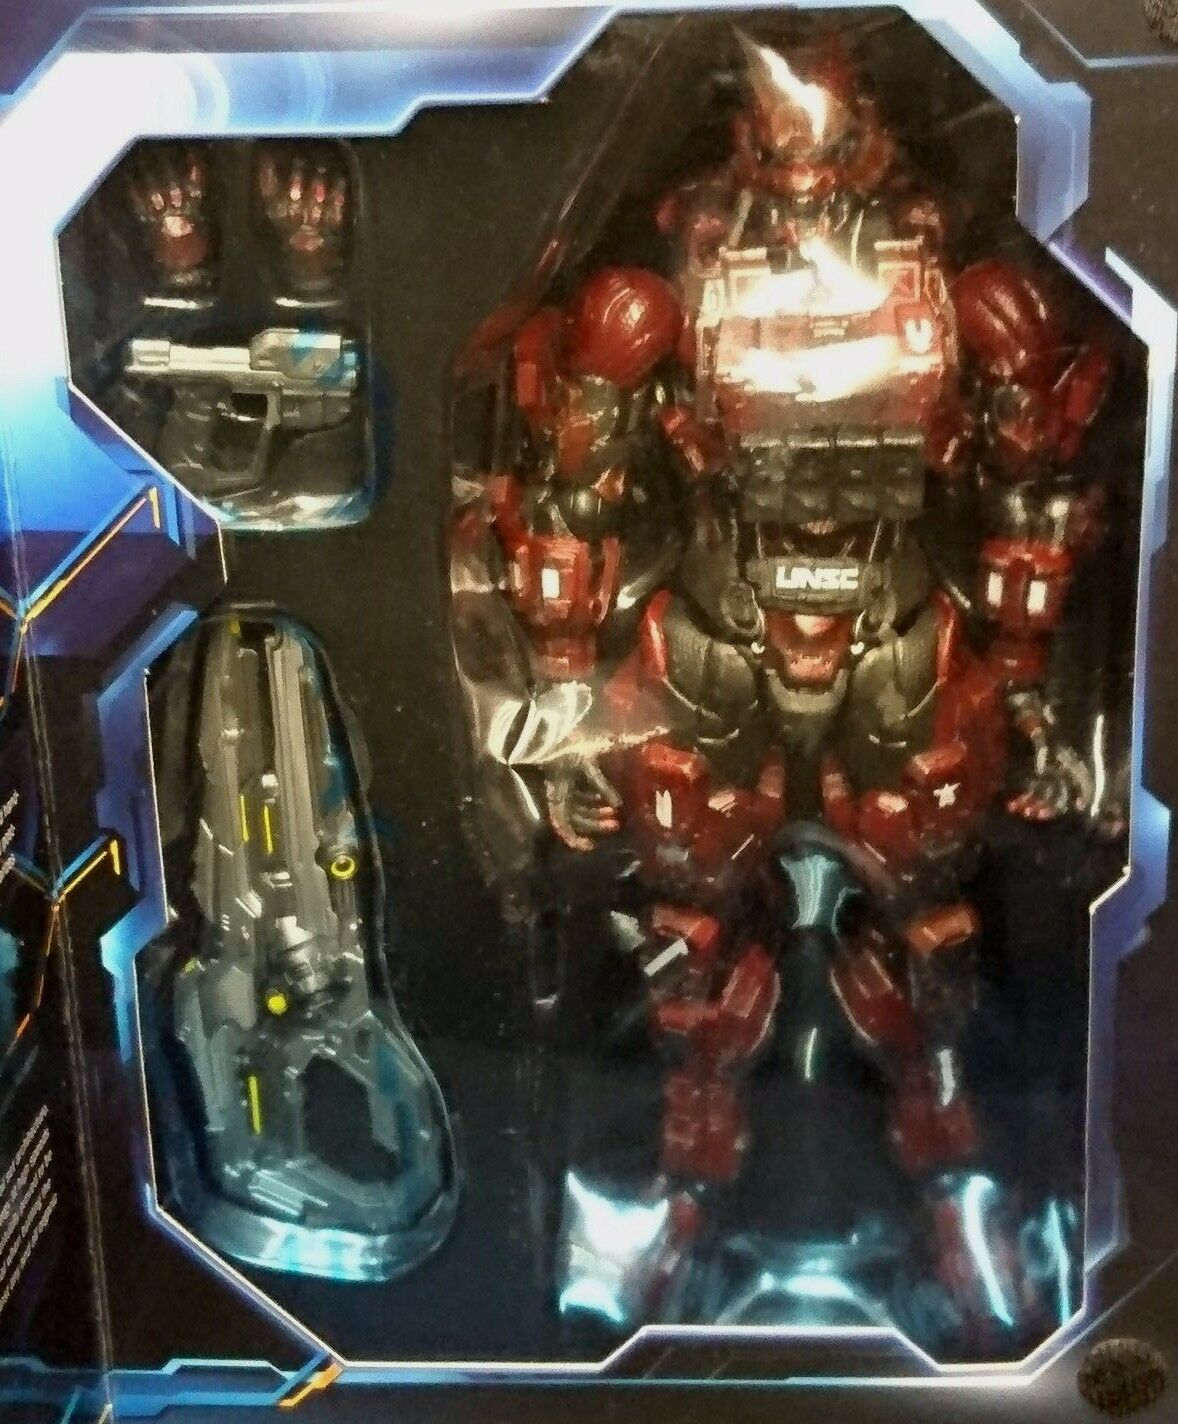 Play Arts Kai HALO 4 4 4 SPARTAN SOLDIER (rot) 9  23cm Action Figure New  Rare  Xbox 638c63